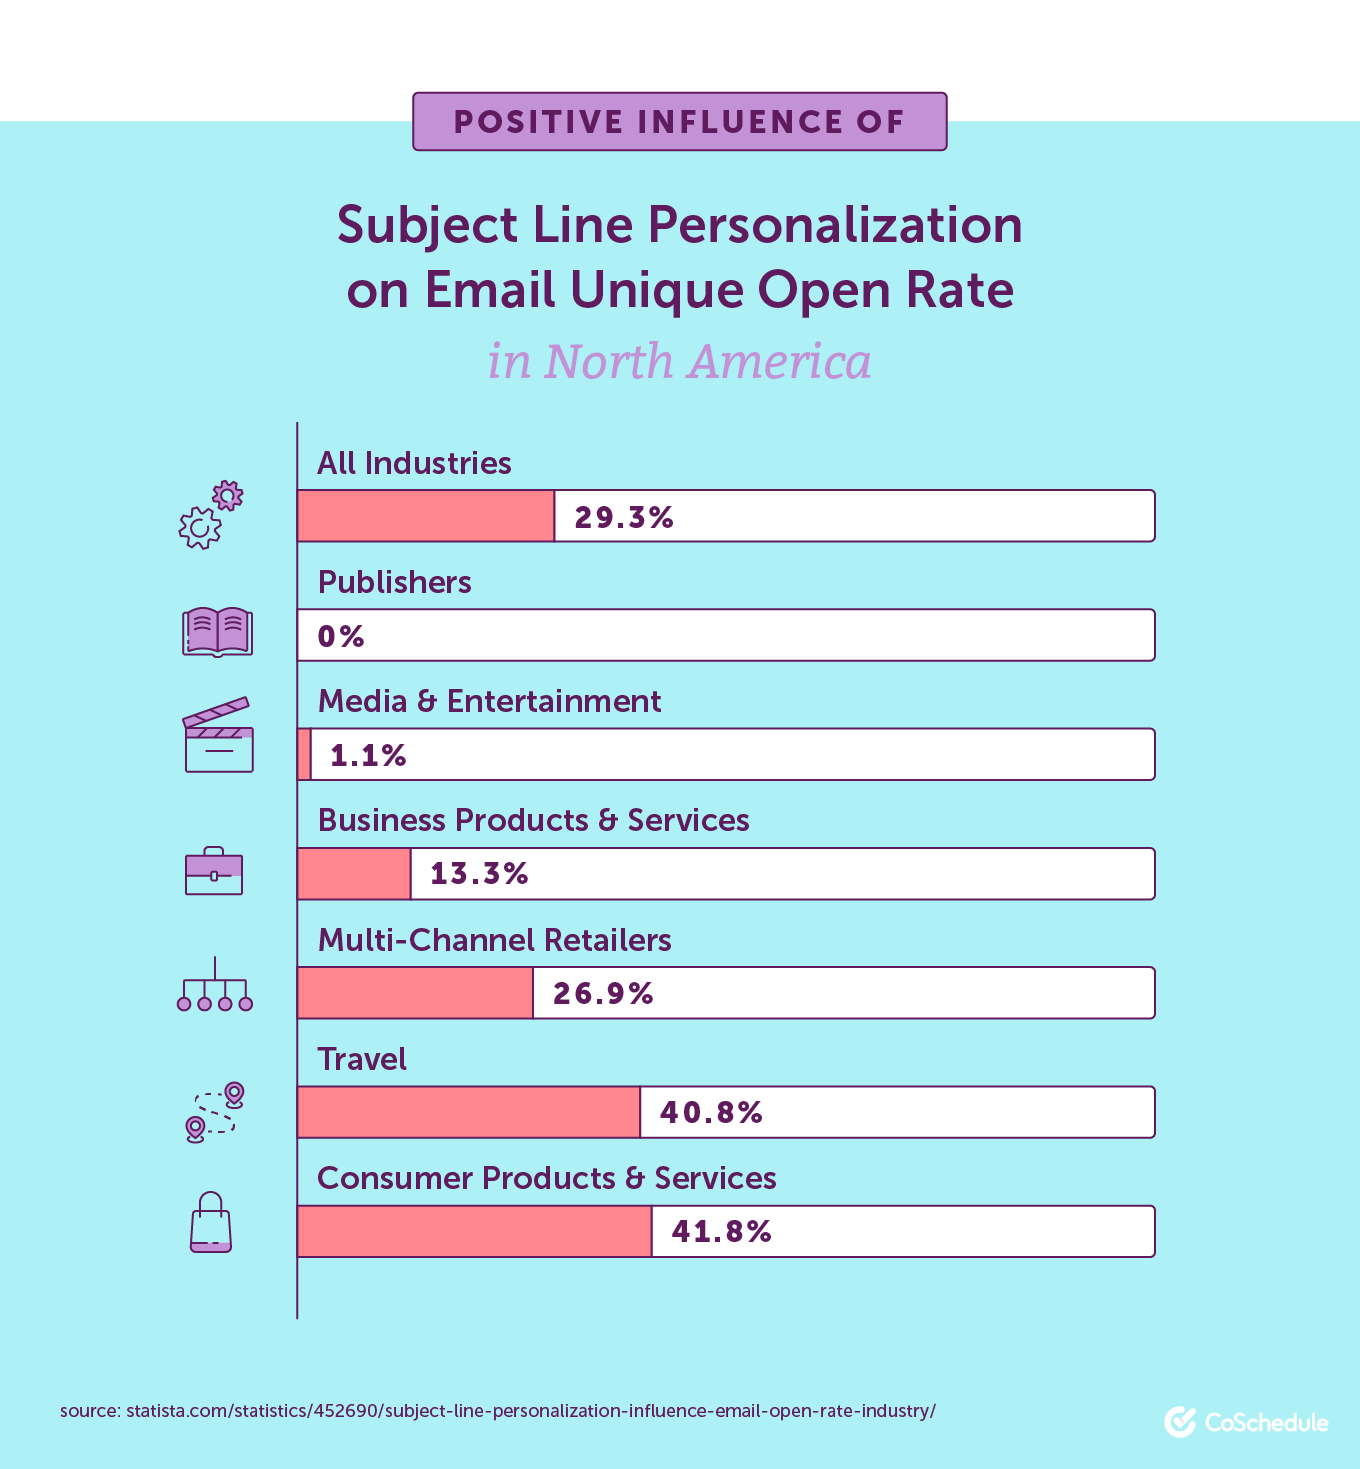 Positive Influence of Subject Line Personalization on Email Unique Open Rate in North America